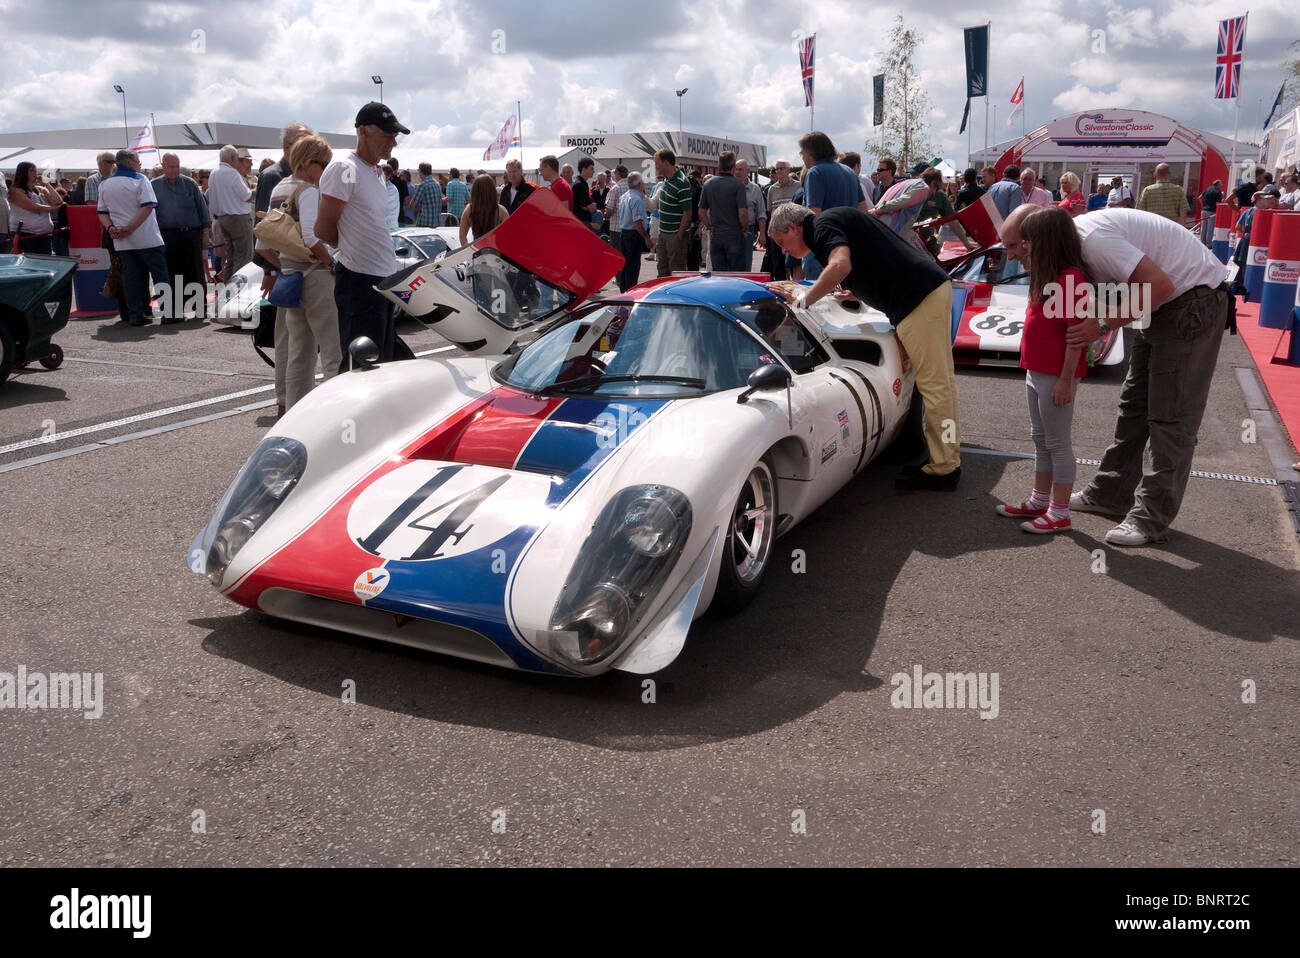 Lola T70 in the paddock before race at Silverstone Classic. - Stock Image